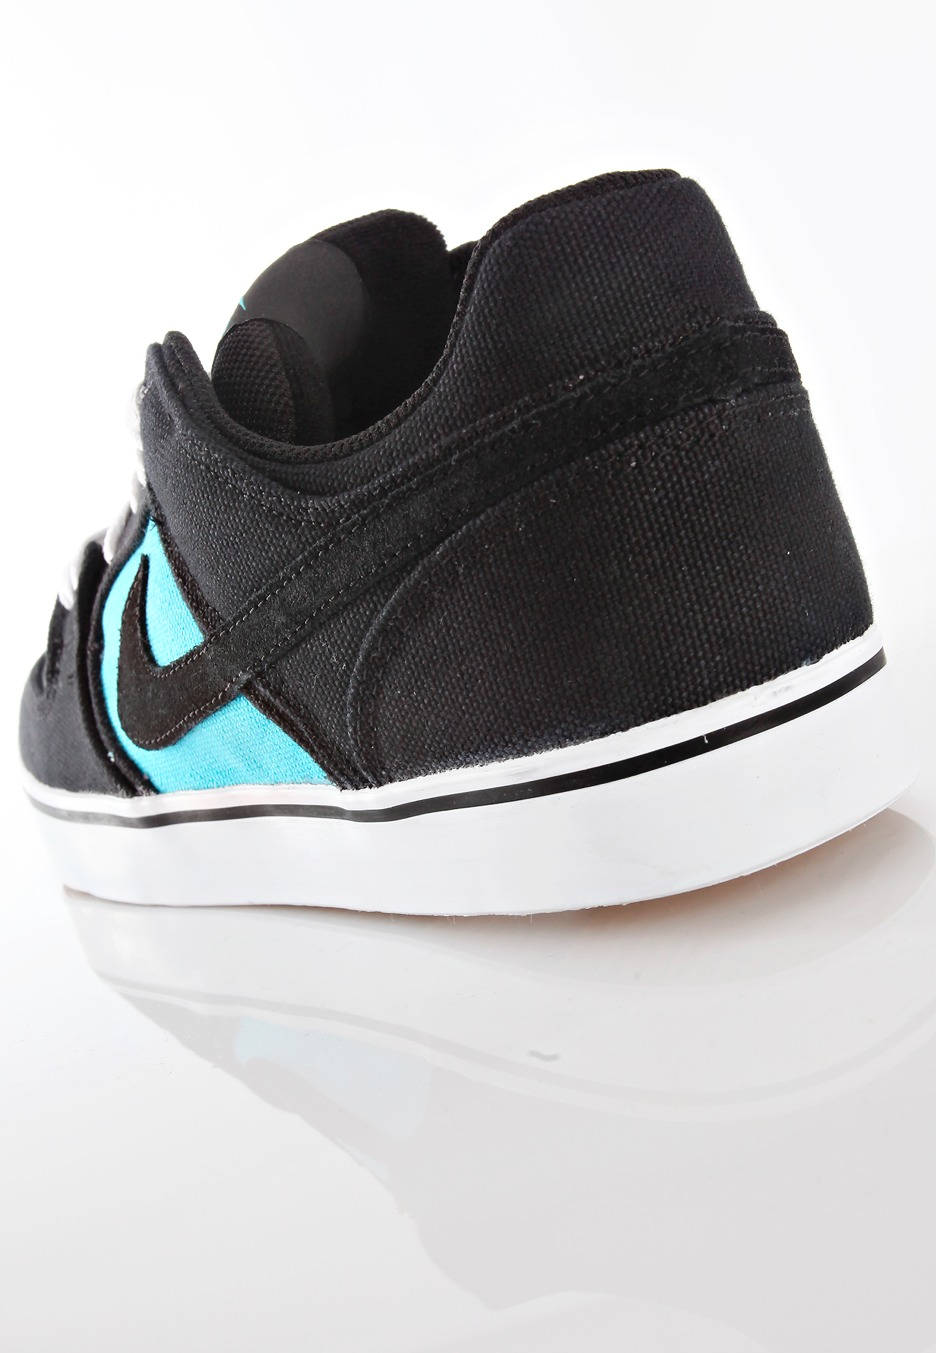 buy online 379fa 8bd92 nike meleecanvas shoes detail1 lg.jpg